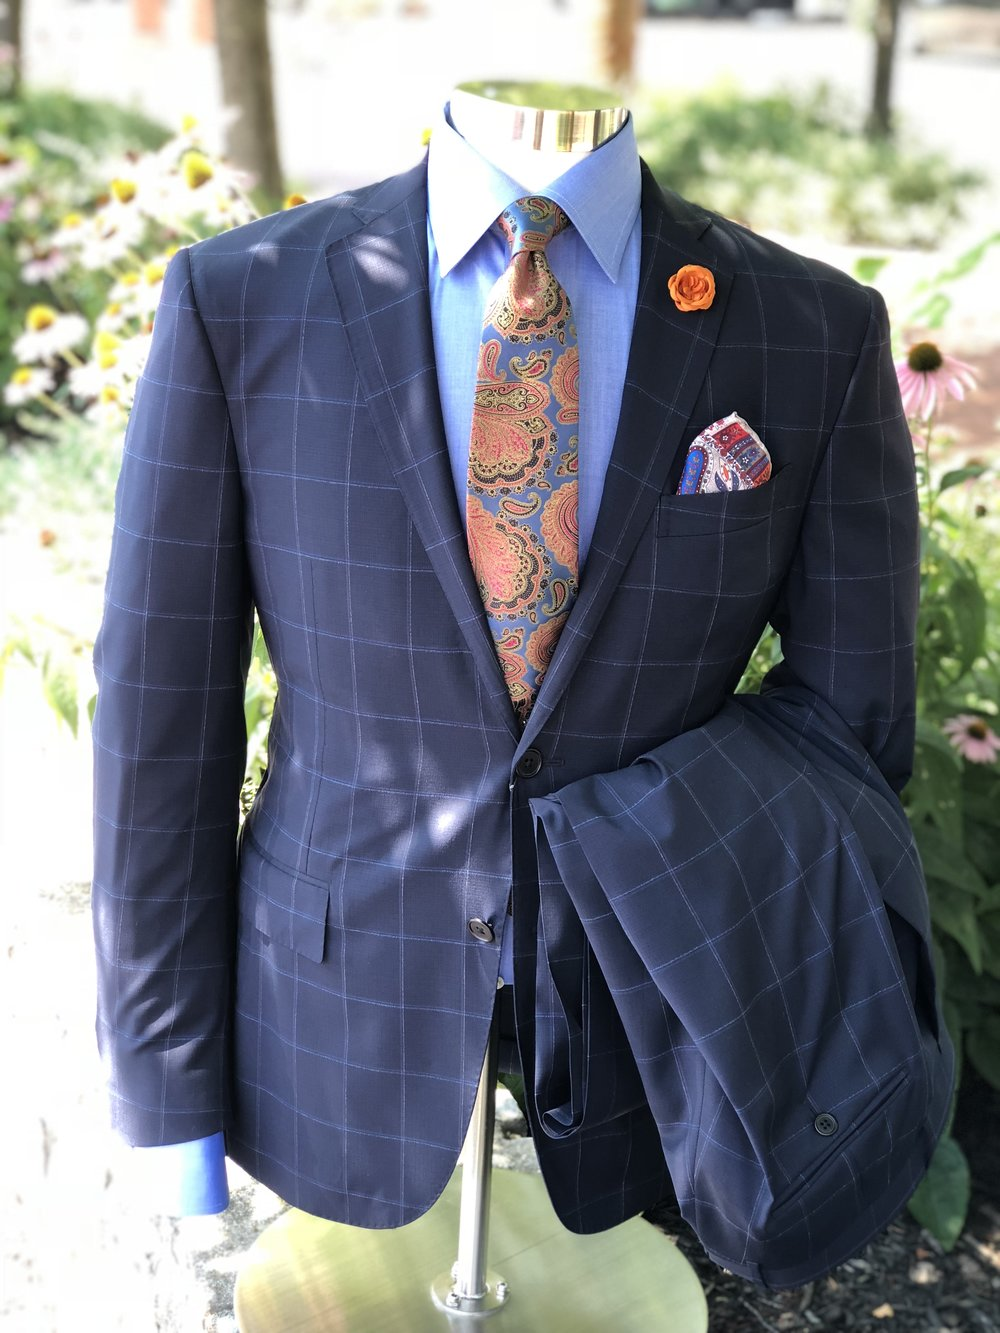 cincinnati-mens-suit.jpg